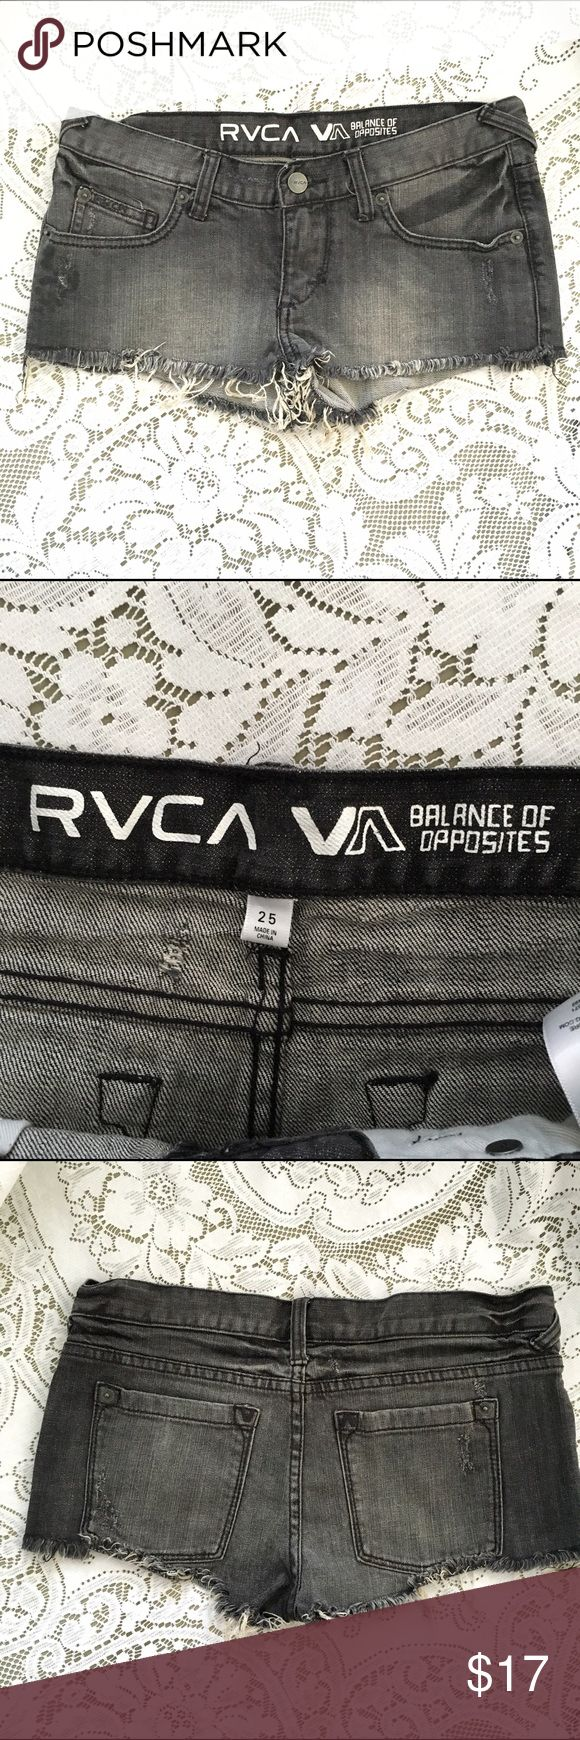 RVCA Black Jean Cutoff Distressed Shorts - Size 25 Waist Band - 30 inches/ Rise 6.5 inches.  Buying pre-owned clothing is an ethical way to have a fashionable wardrobe.  Thank you for visiting my closet. RVCA Shorts Jean Shorts